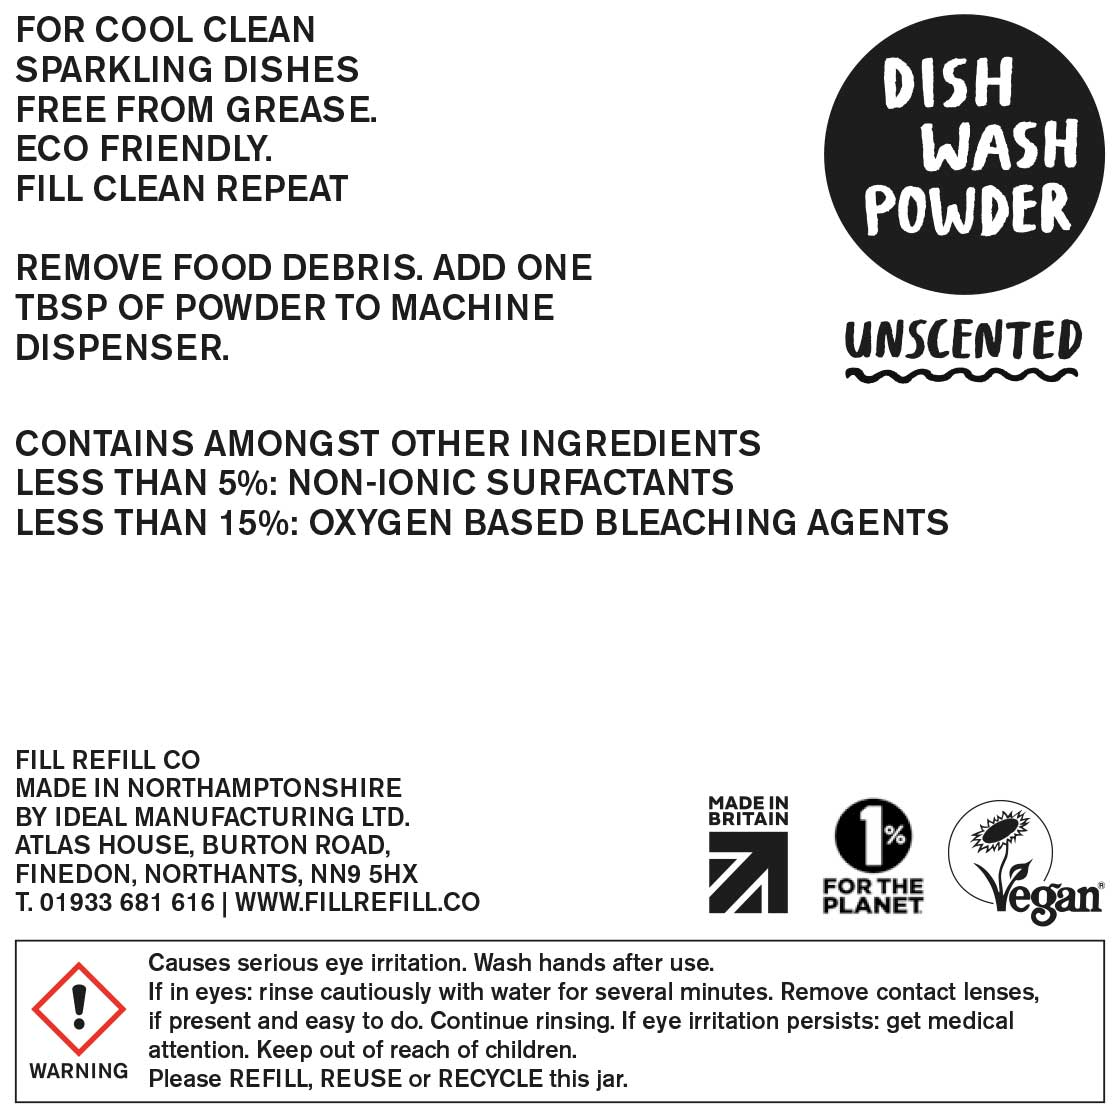 Dishwash Powder - Unscented (powder only) by Fill